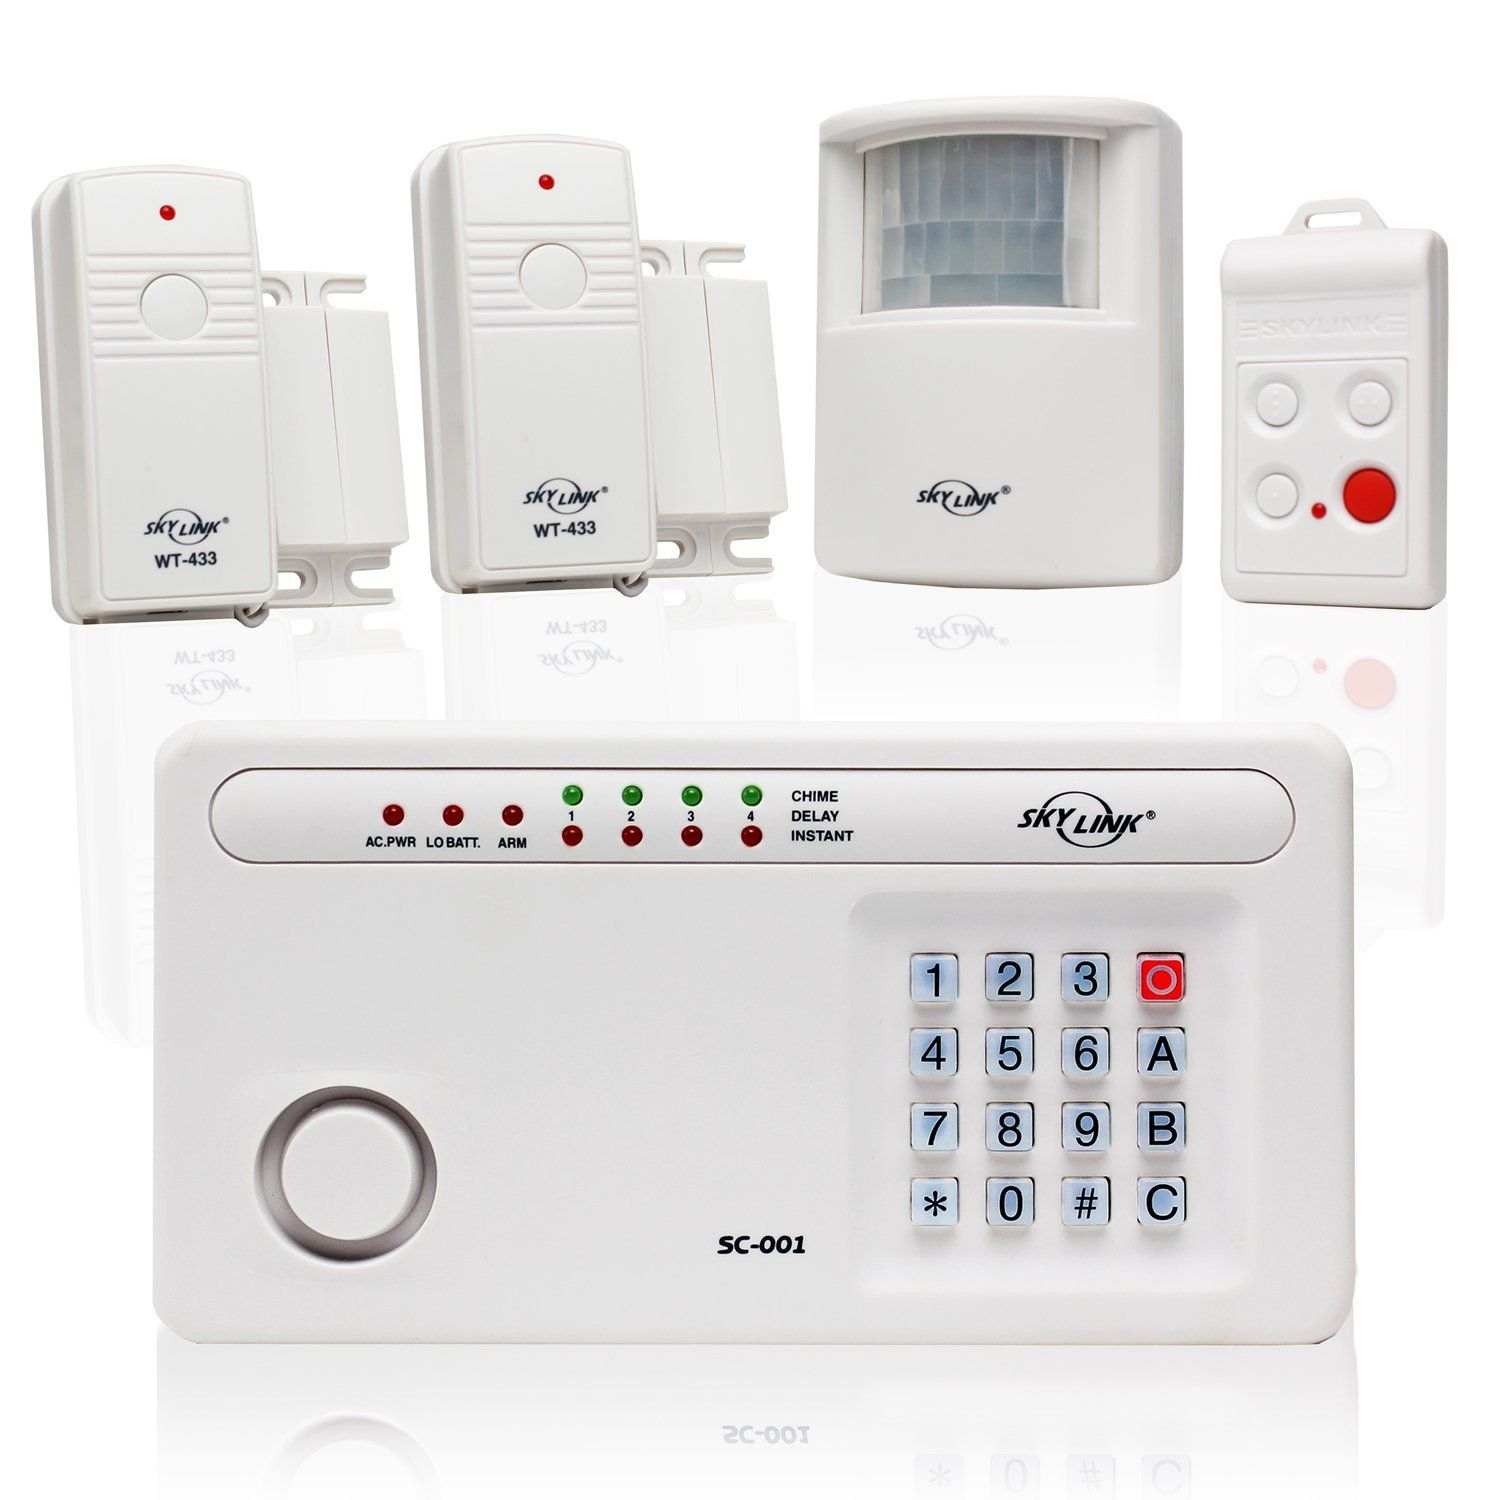 Skylink sc 100w wireless deluxe home and office burglar alarm system skylink sc 100w wireless deluxe home and office burglar alarm system alert security package affordable easy to install diy to view further solutioingenieria Image collections